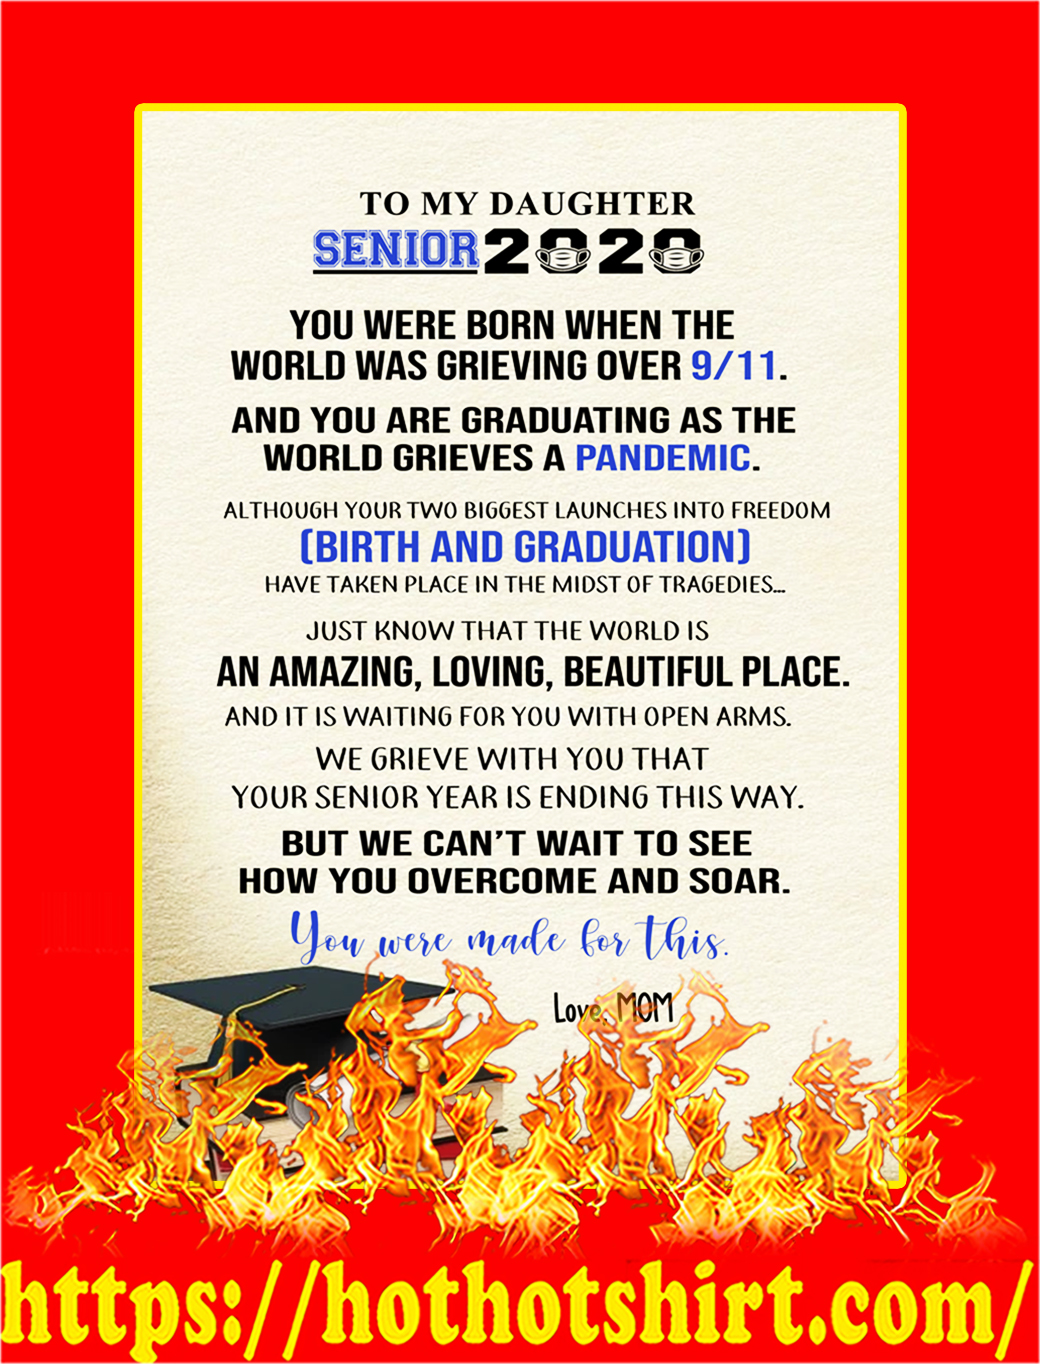 To my daughter senior 2020 mom poster - A3